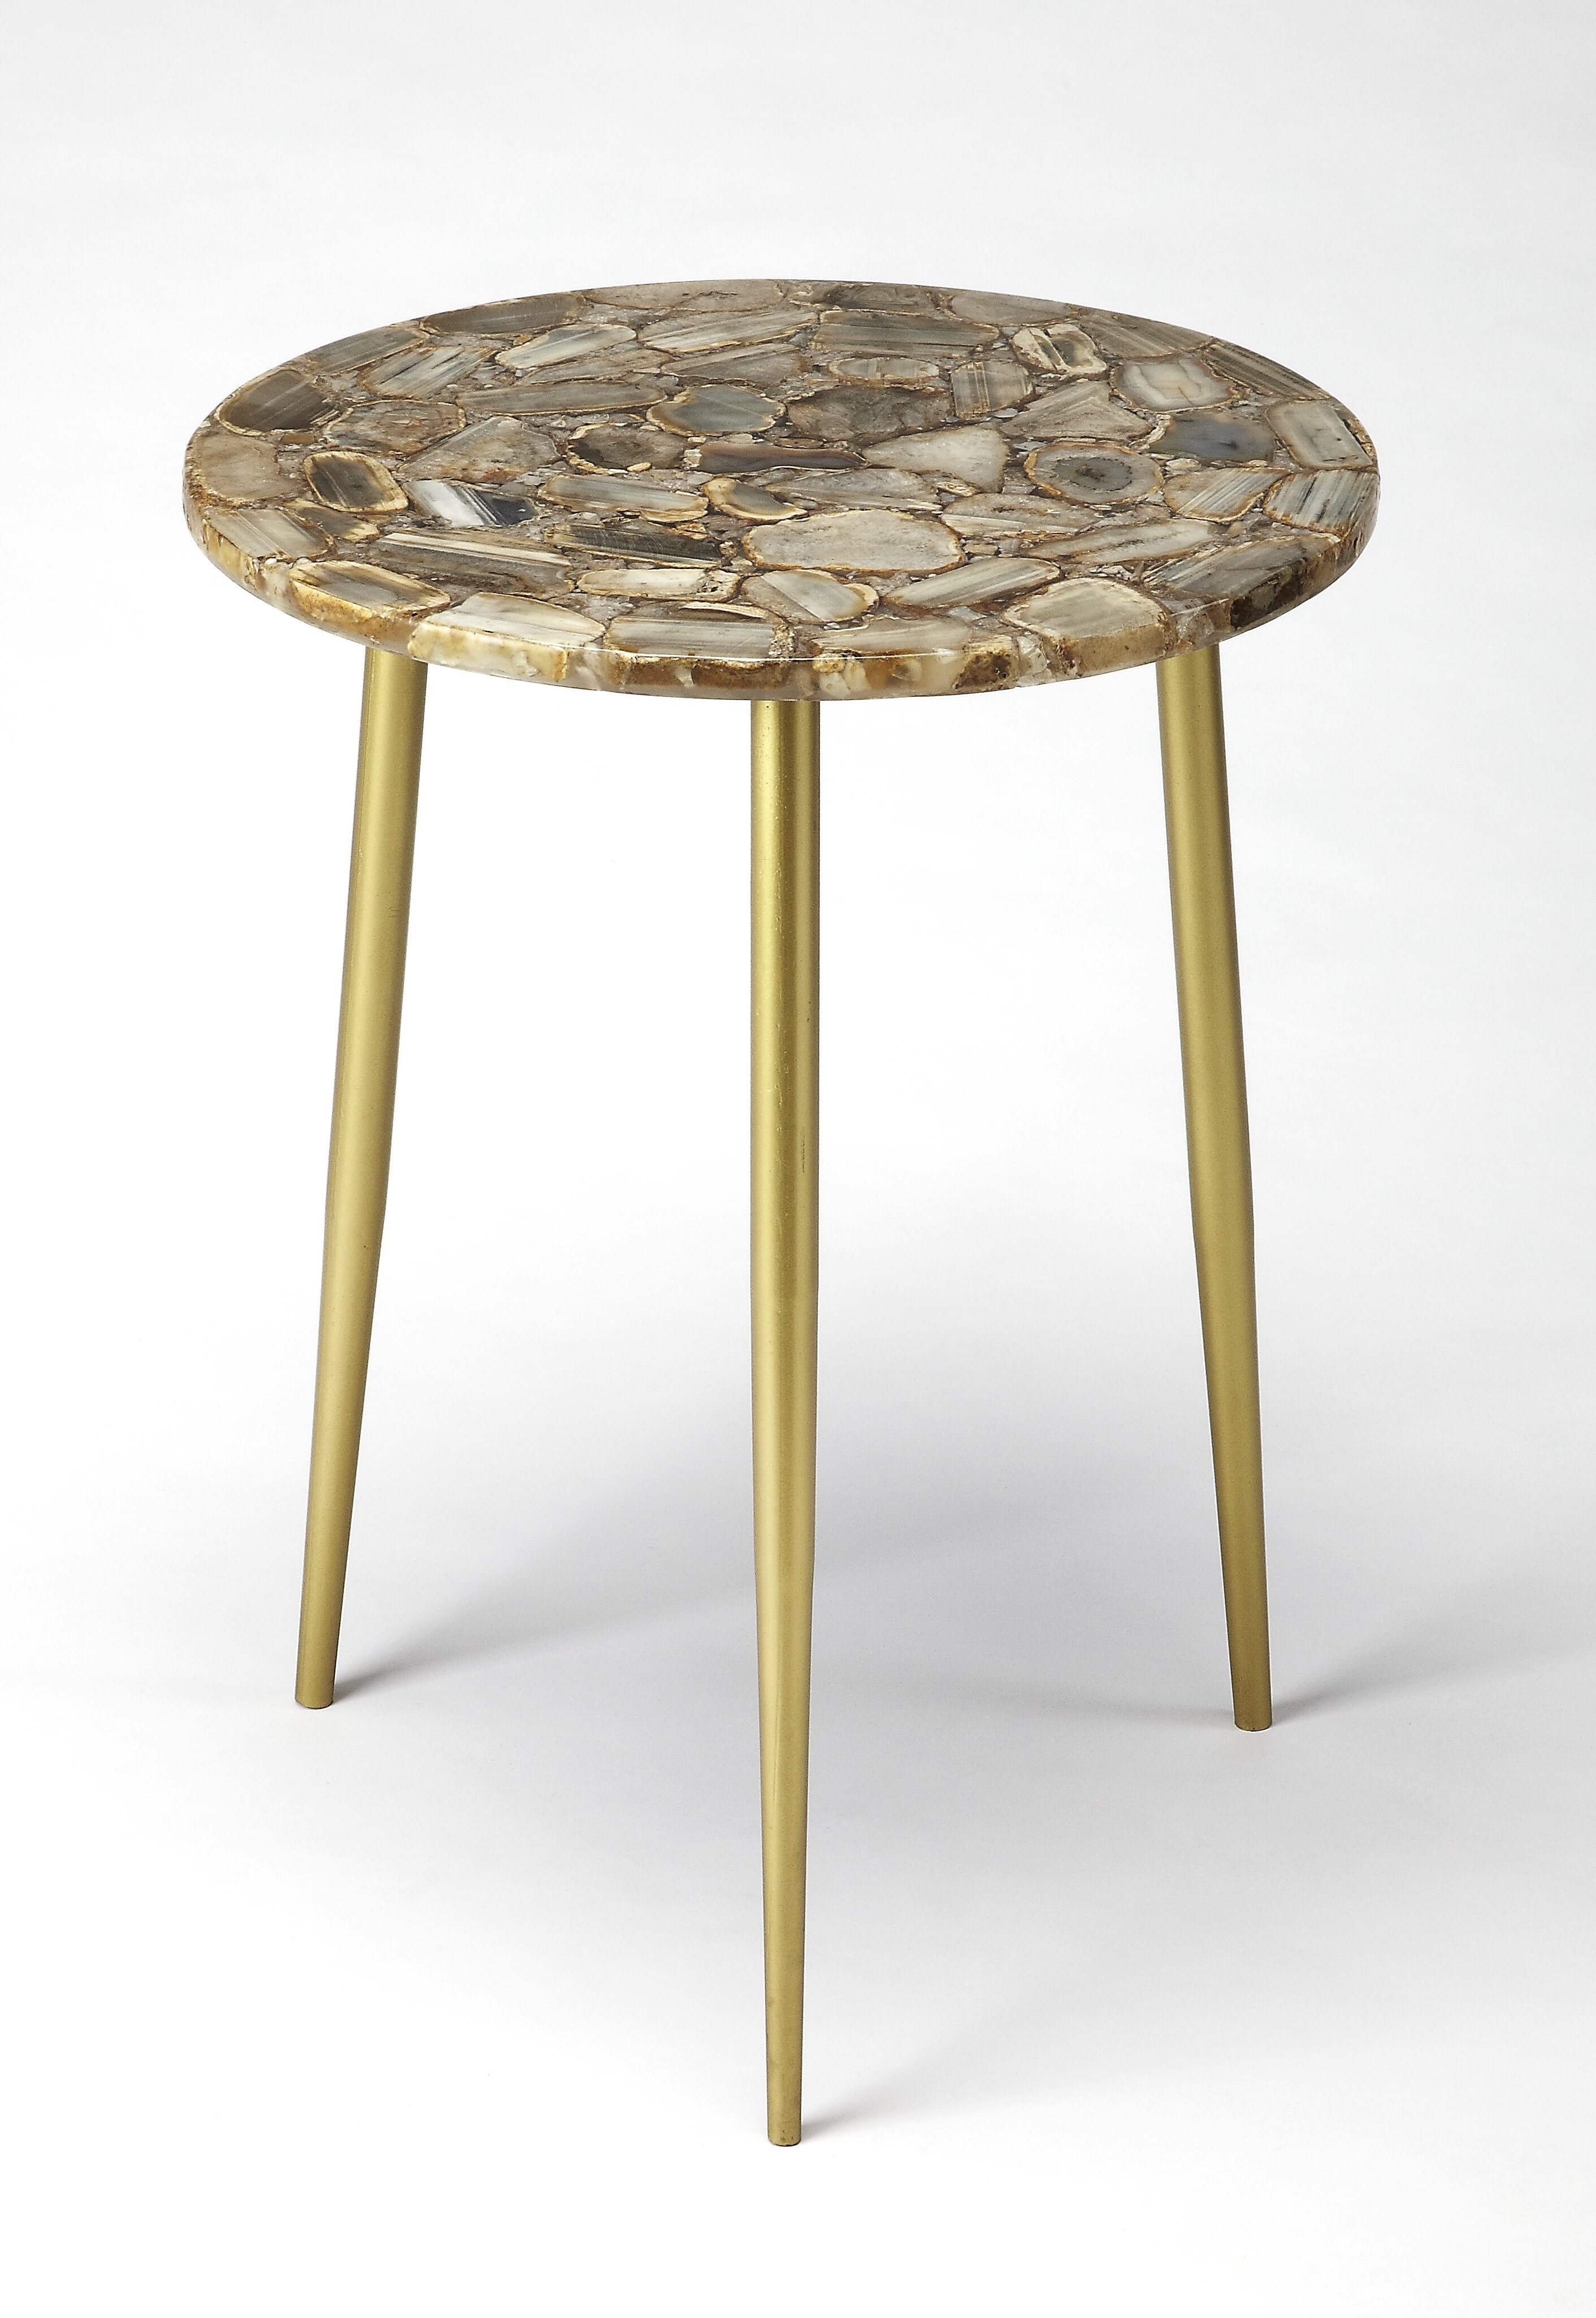 Everly Quinn Briley Agate End Table & Reviews